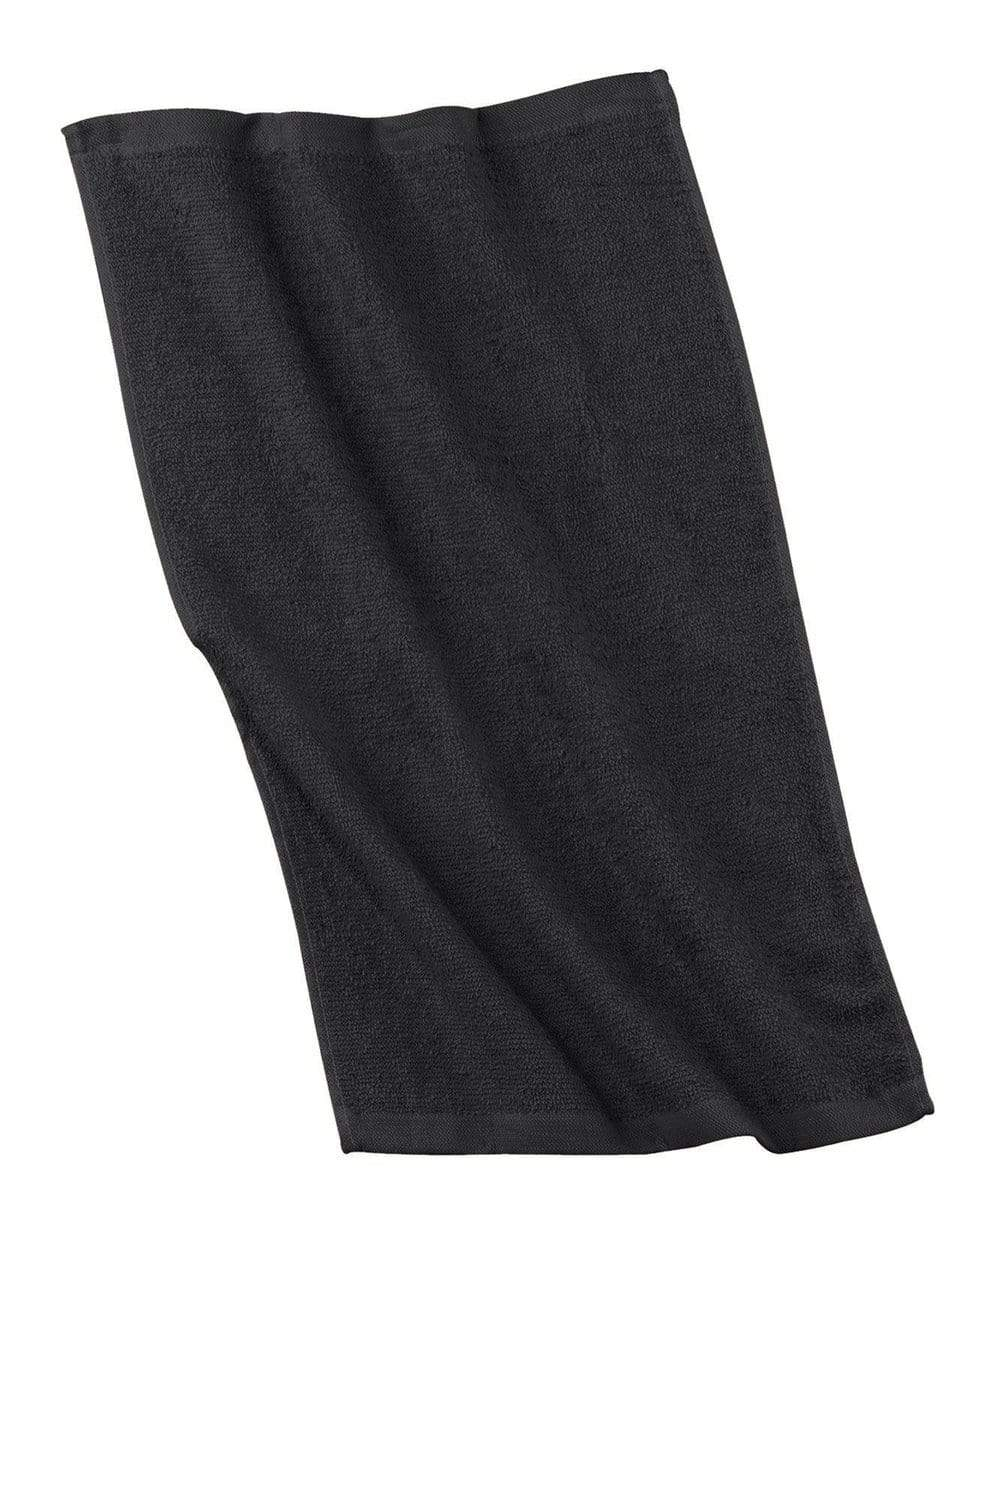 Port /& Company New Clean Look Cotton Hemmed Rally Towel PT38